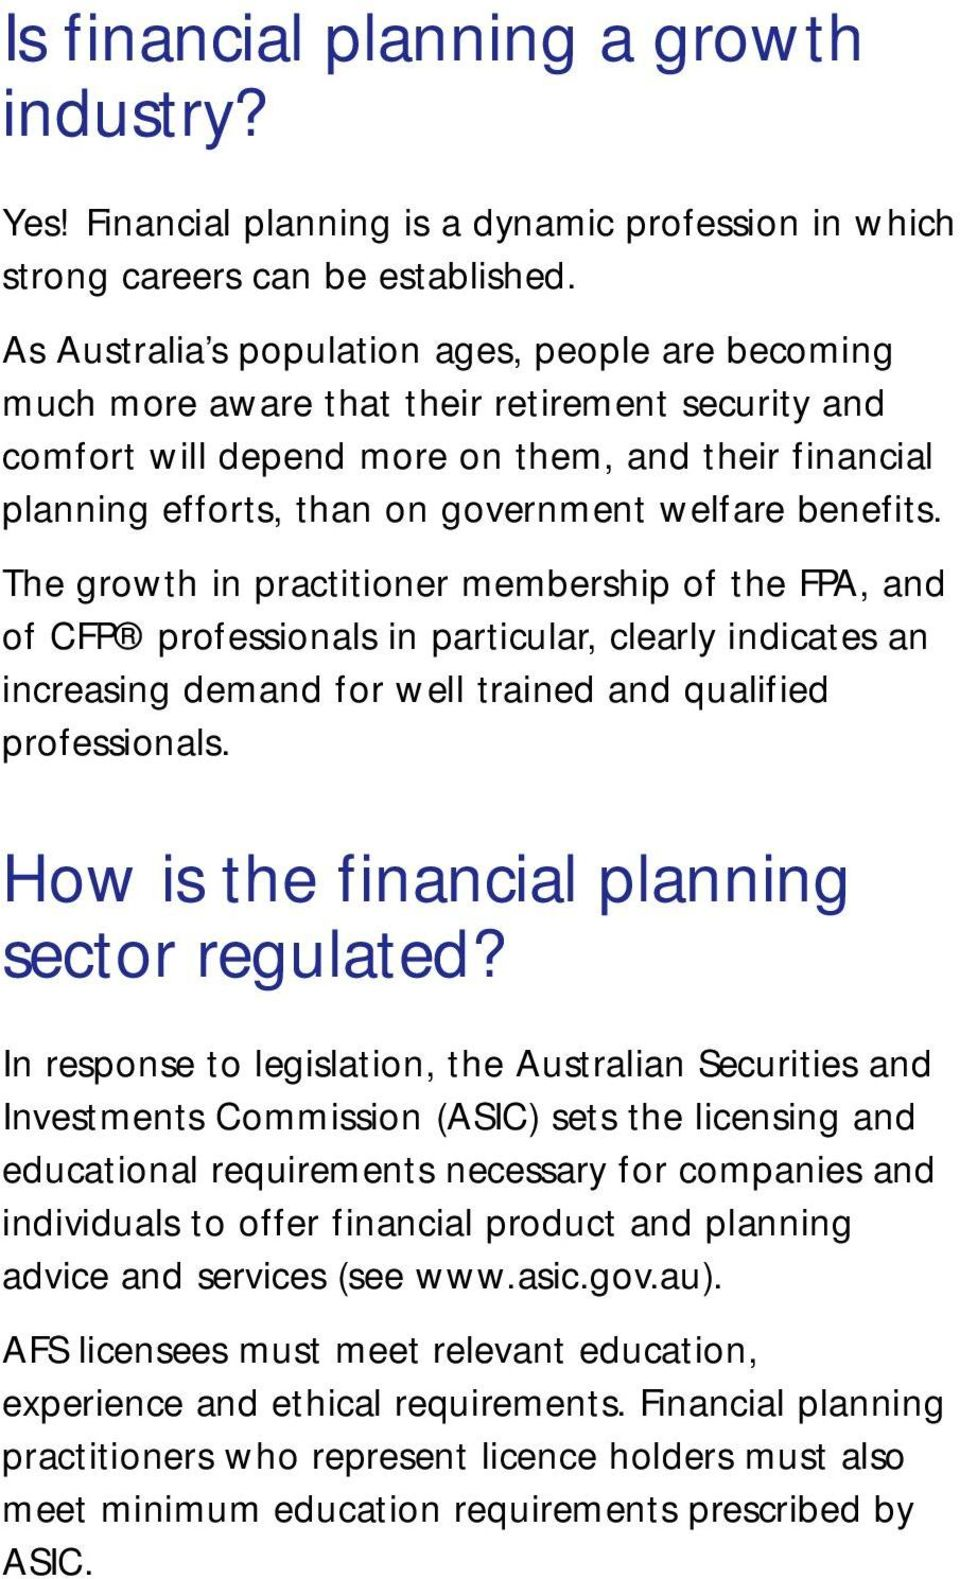 welfare benefits. The growth in practitioner membership of the FPA, and of CFP professionals in particular, clearly indicates an increasing demand for well trained and qualified professionals.